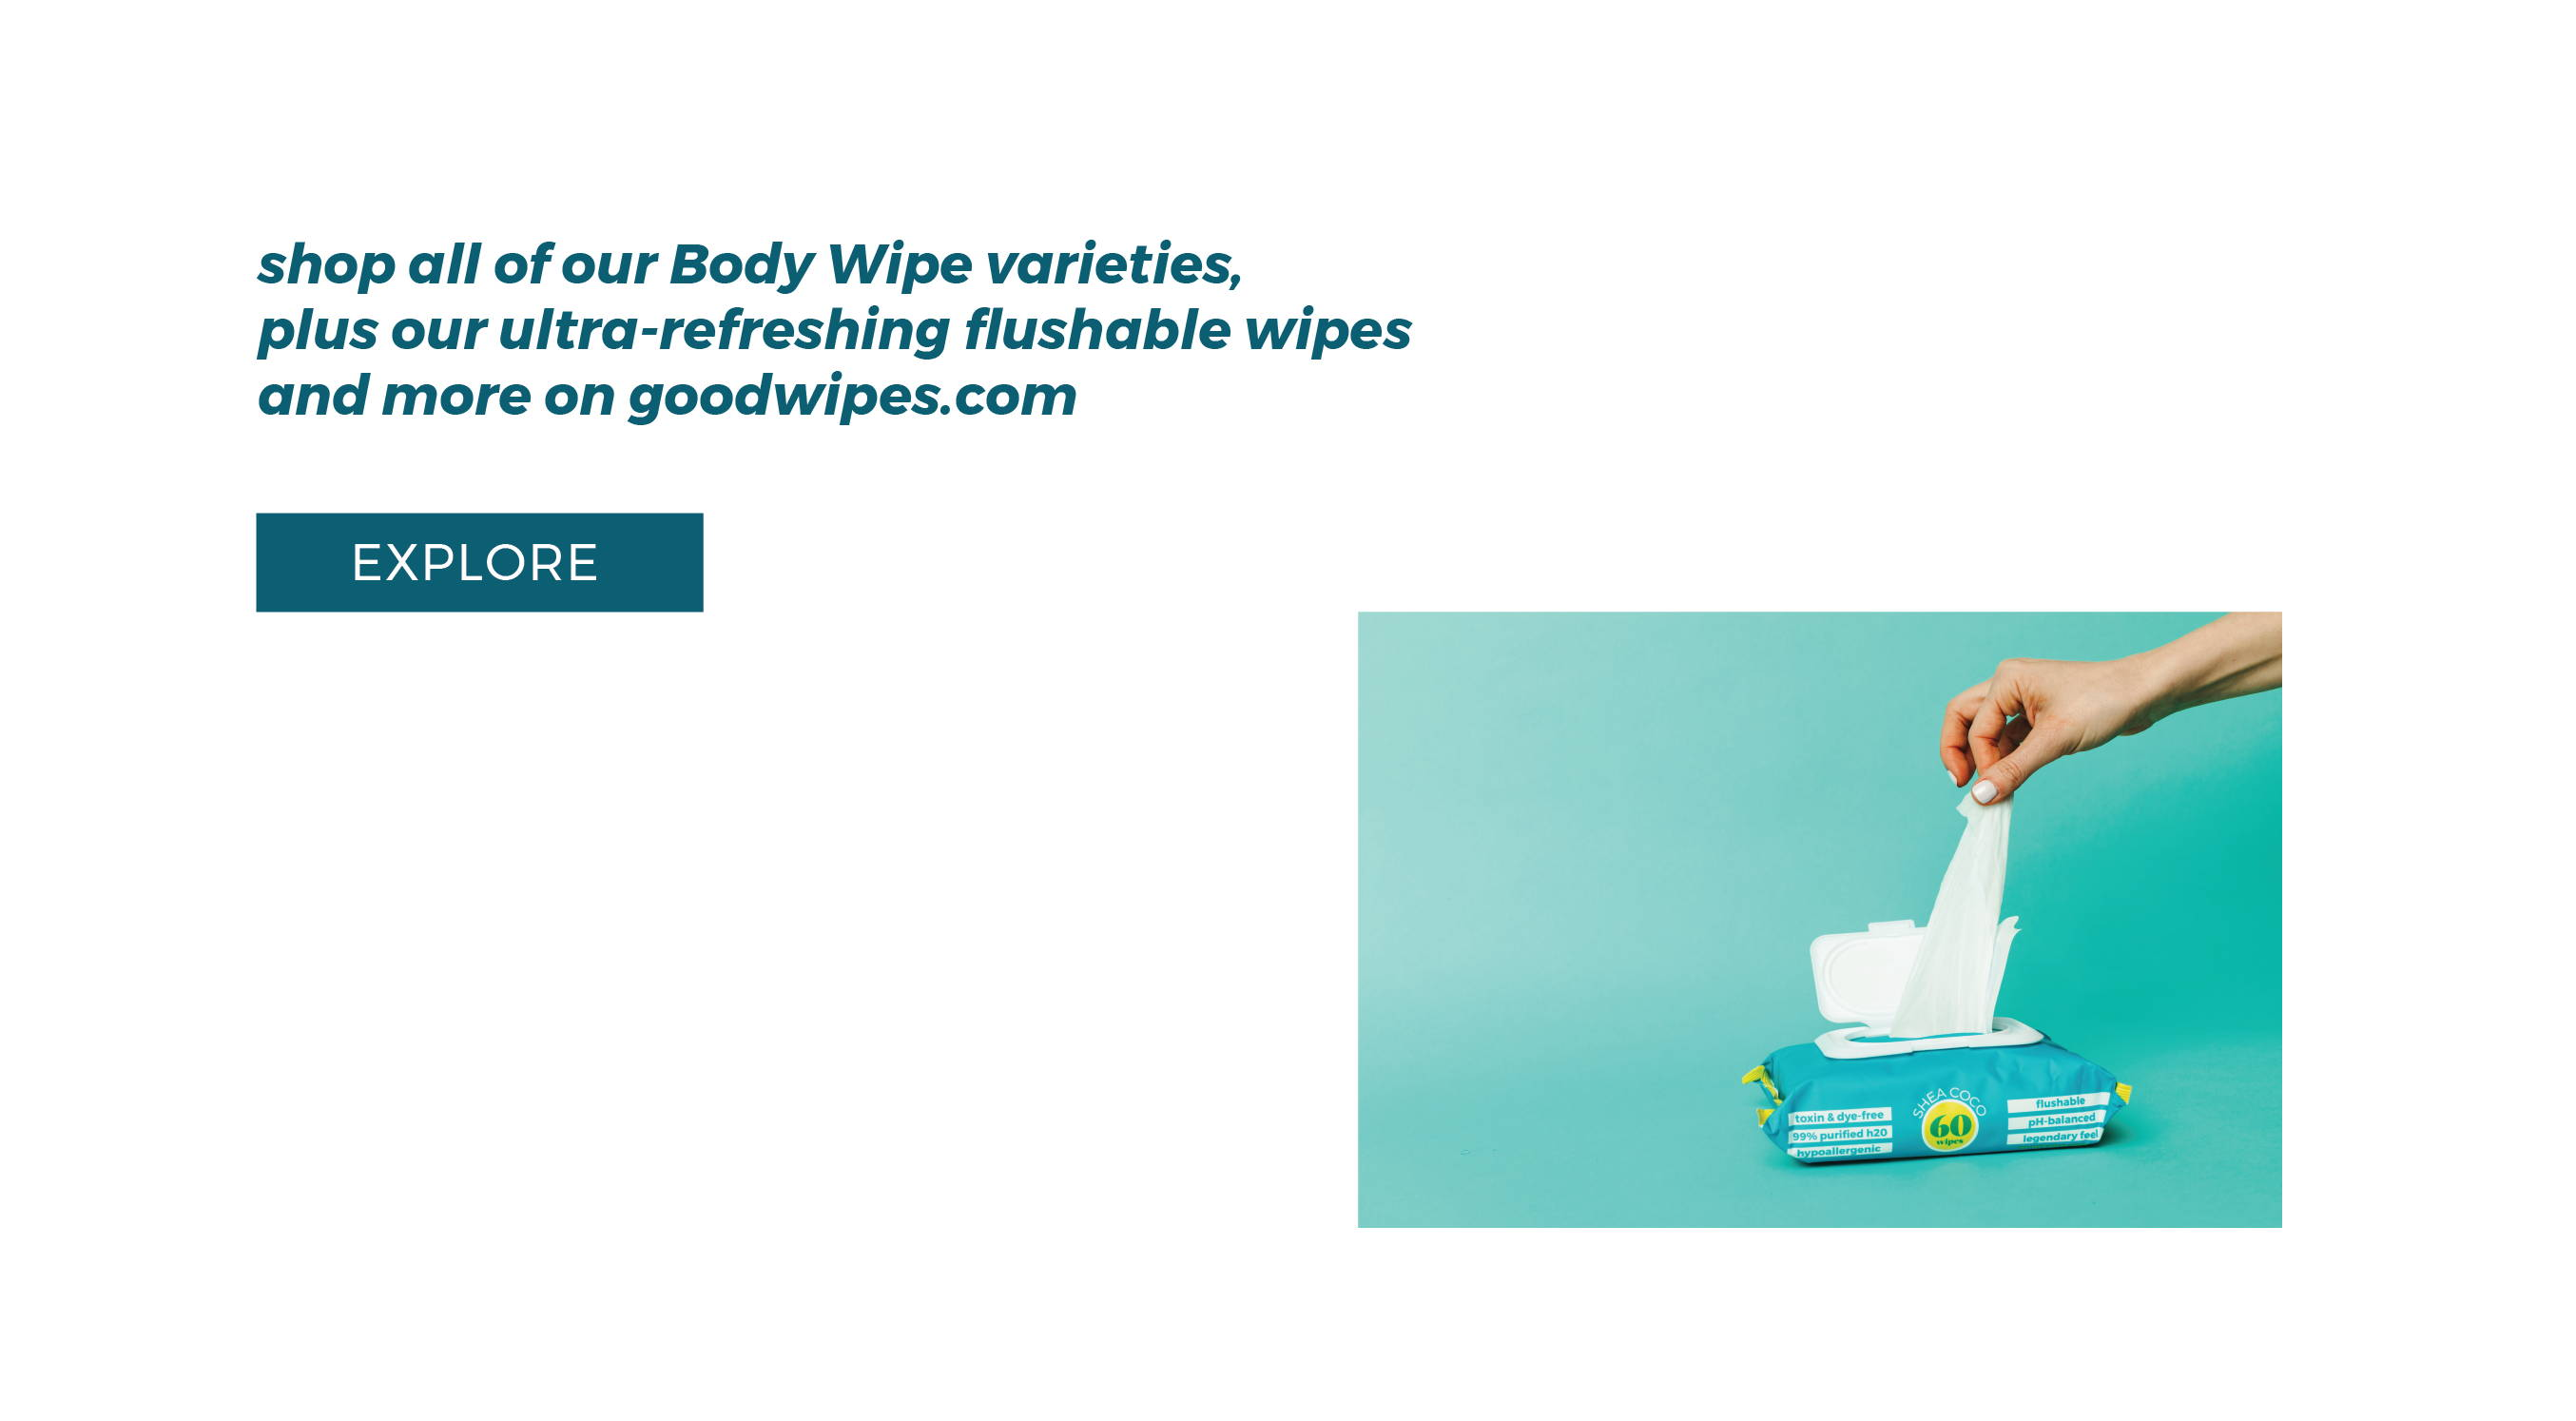 Goodwipes shop our other products on goodwipes.com